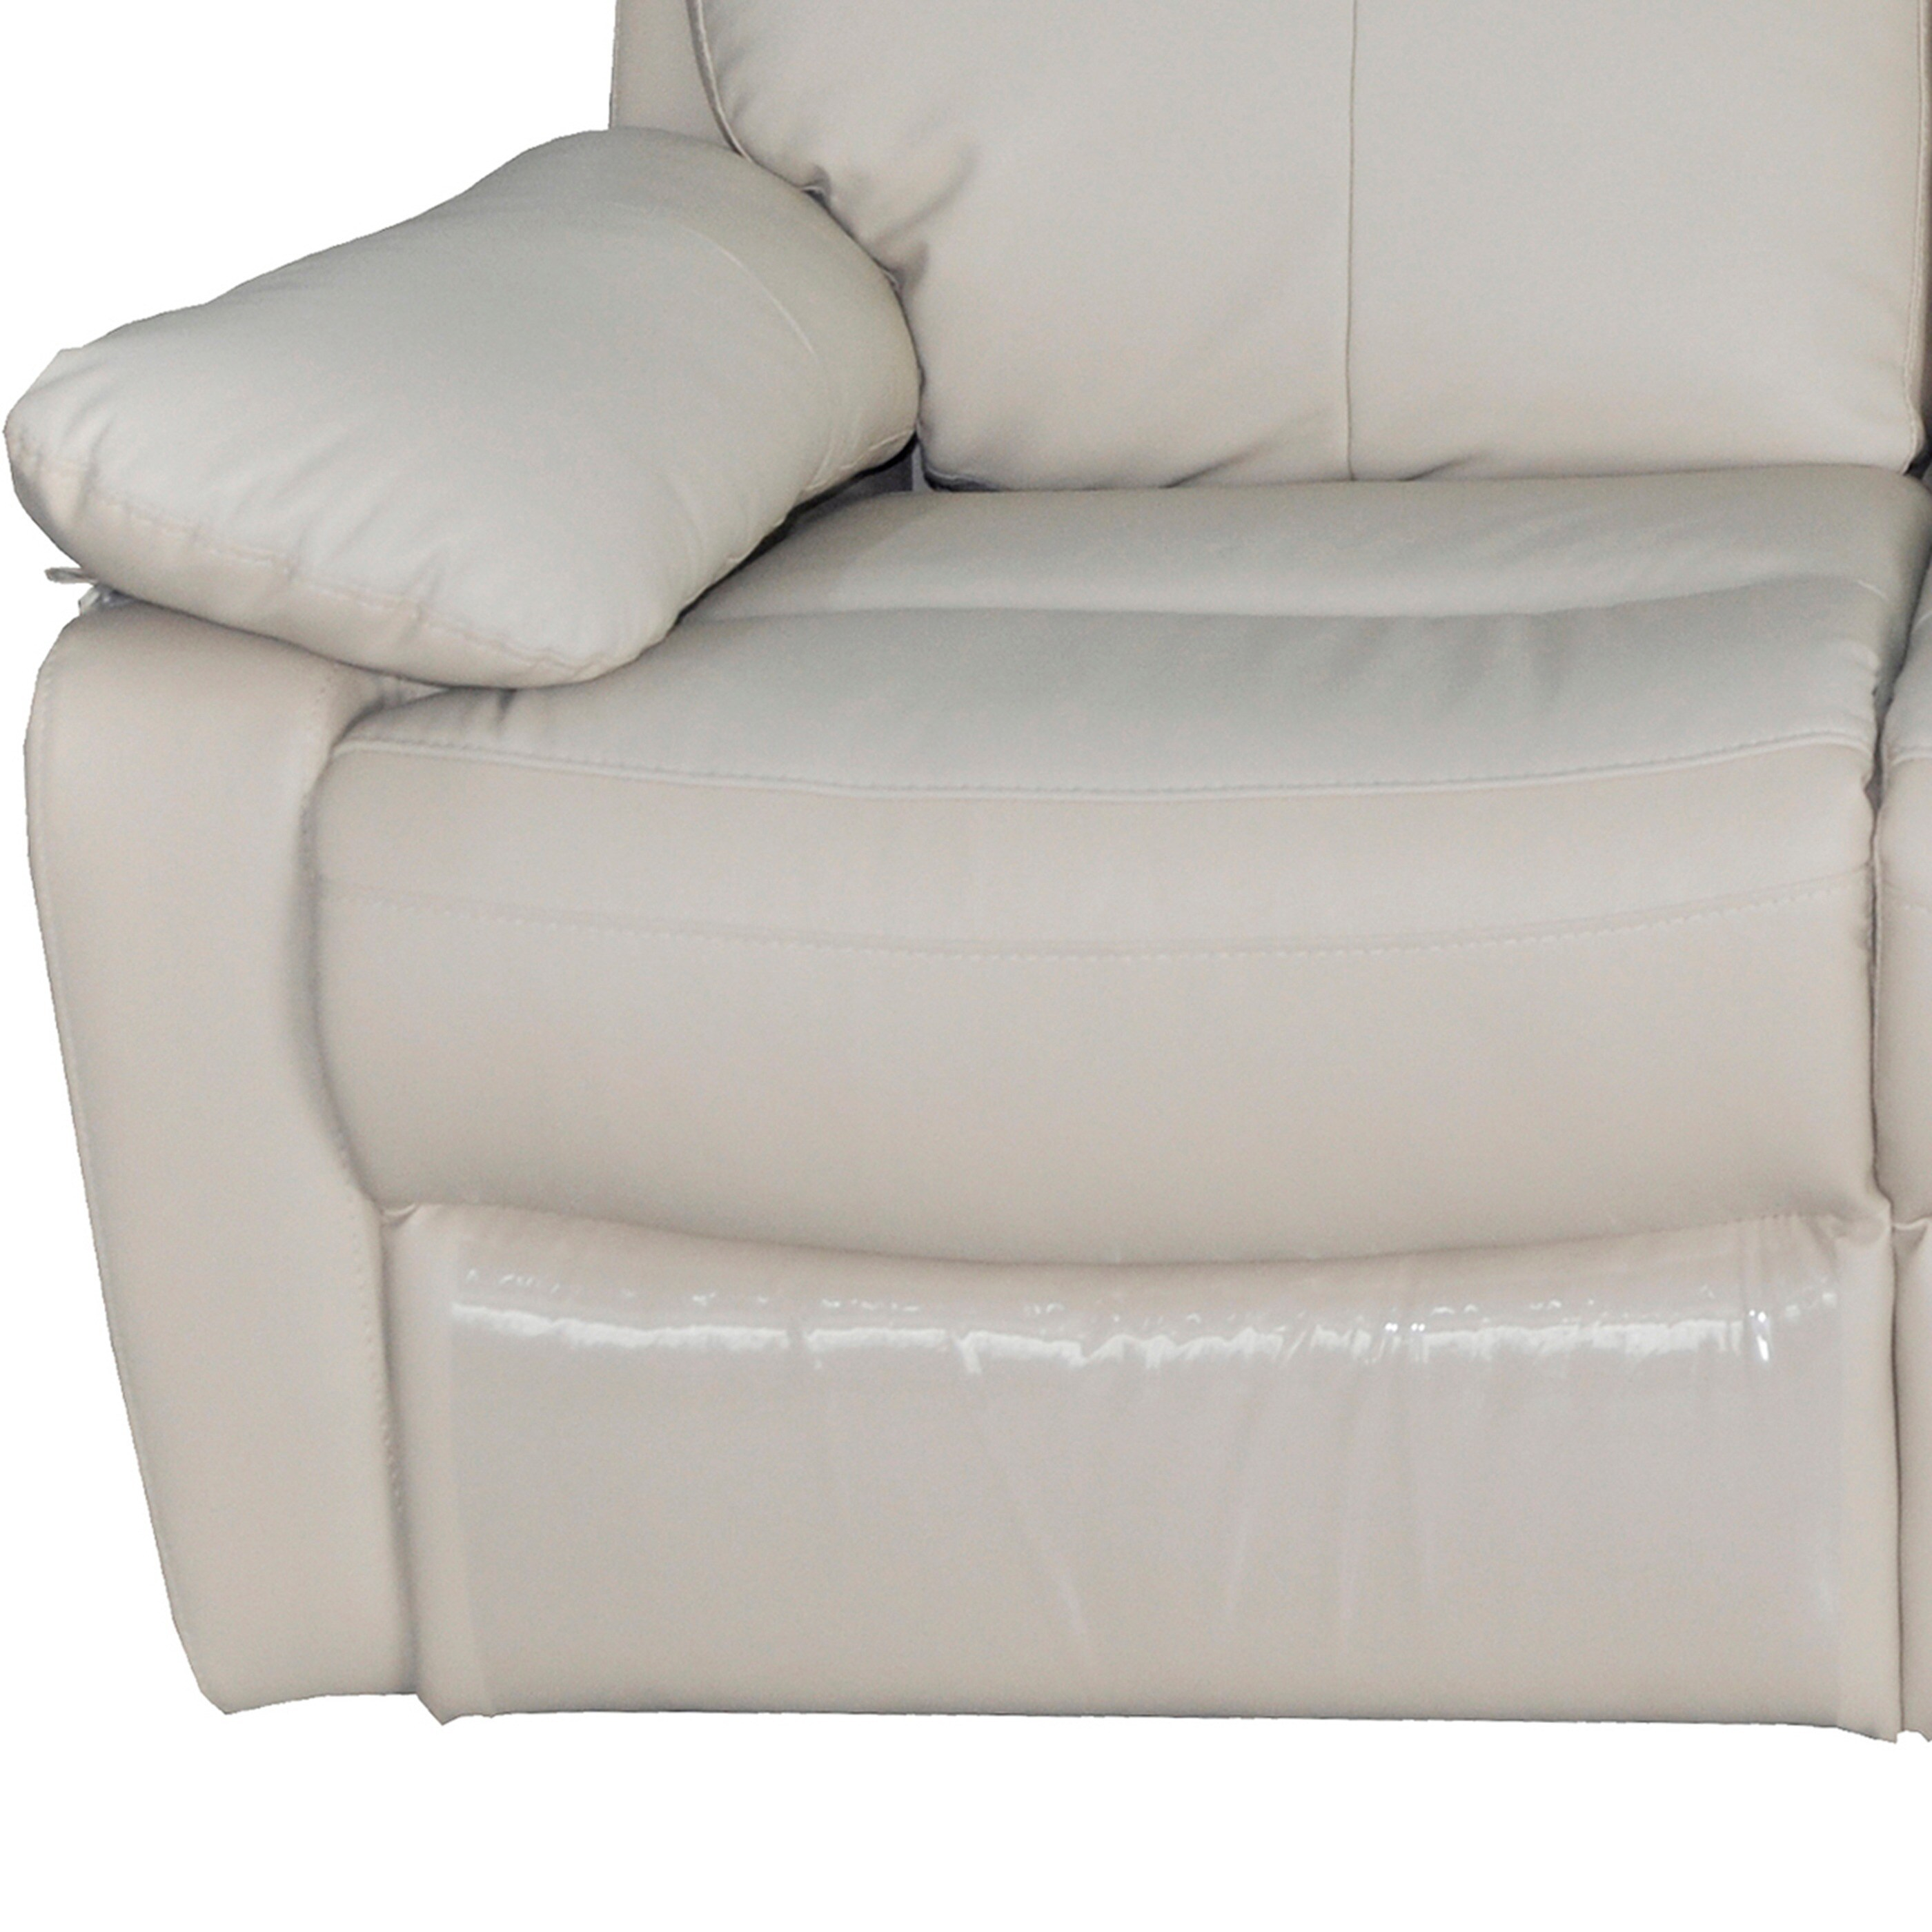 ryker reclining sofa and loveseat 2 piece set kingly 5 seater jacquard of 6 cover shop leather on sale free shipping today overstock com 11854520